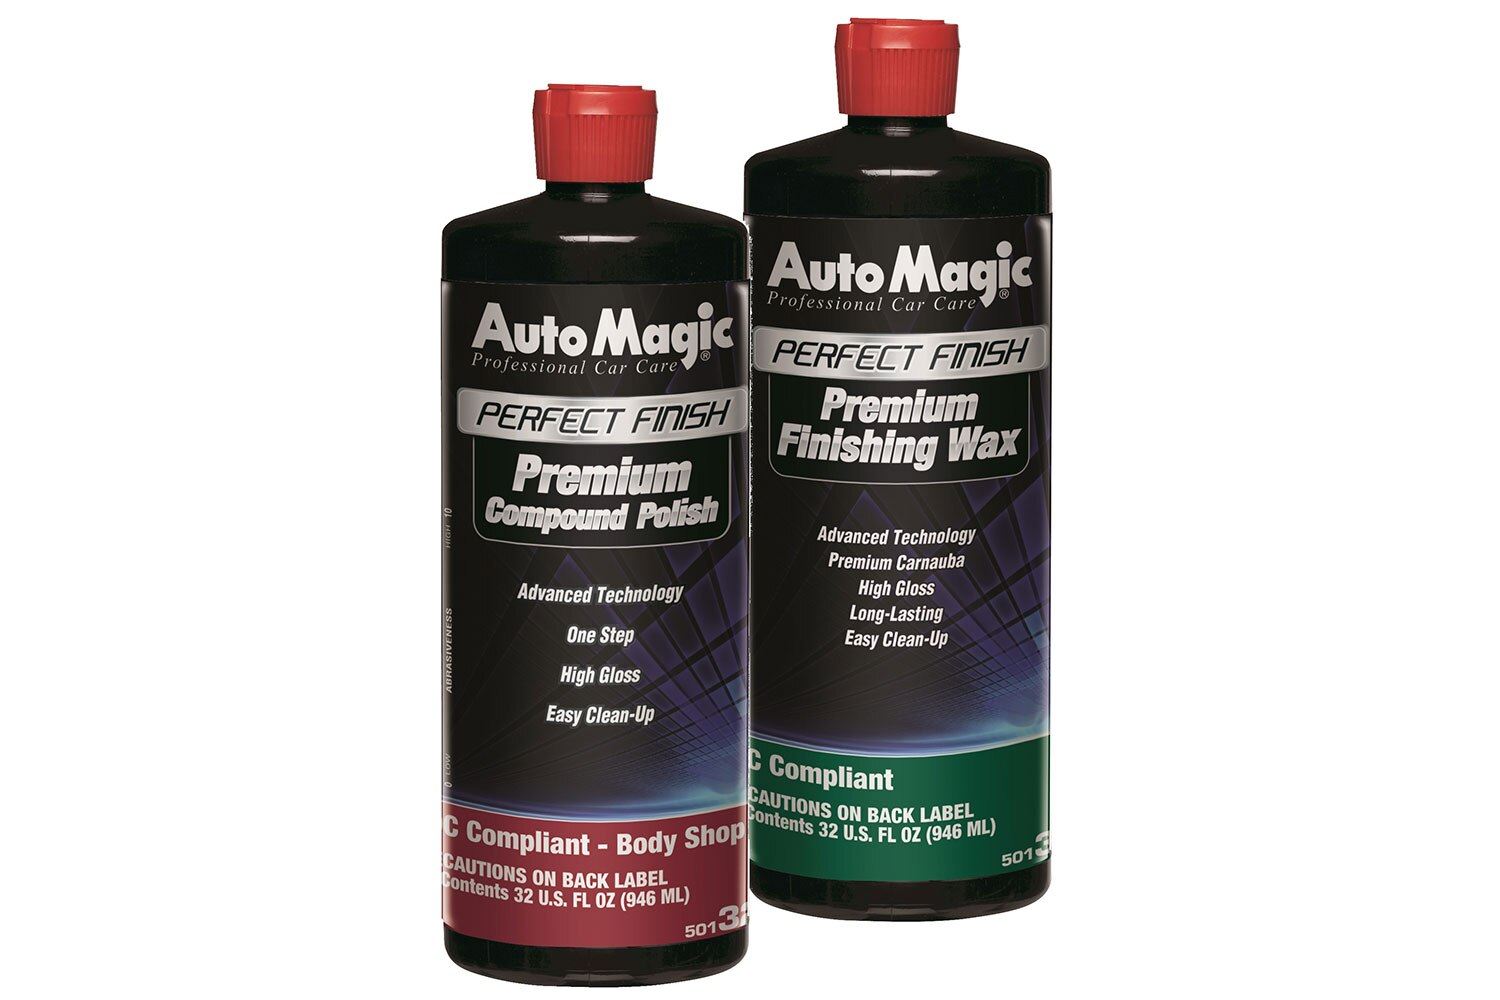 perfect-finish-2-step-system-compound-polish-wax1